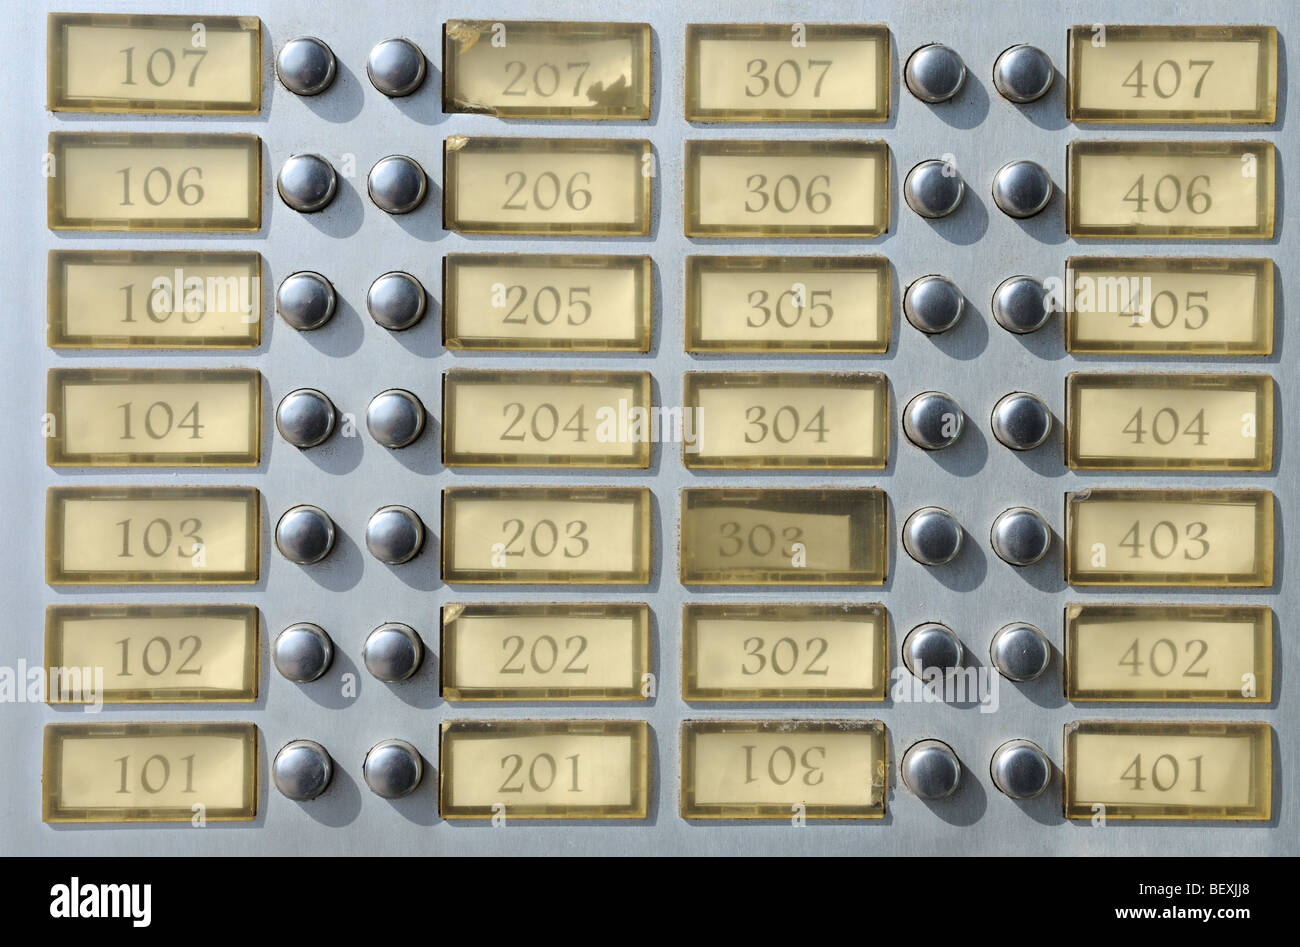 Apartment House Doorbell Plate With Numbers   Stock Image